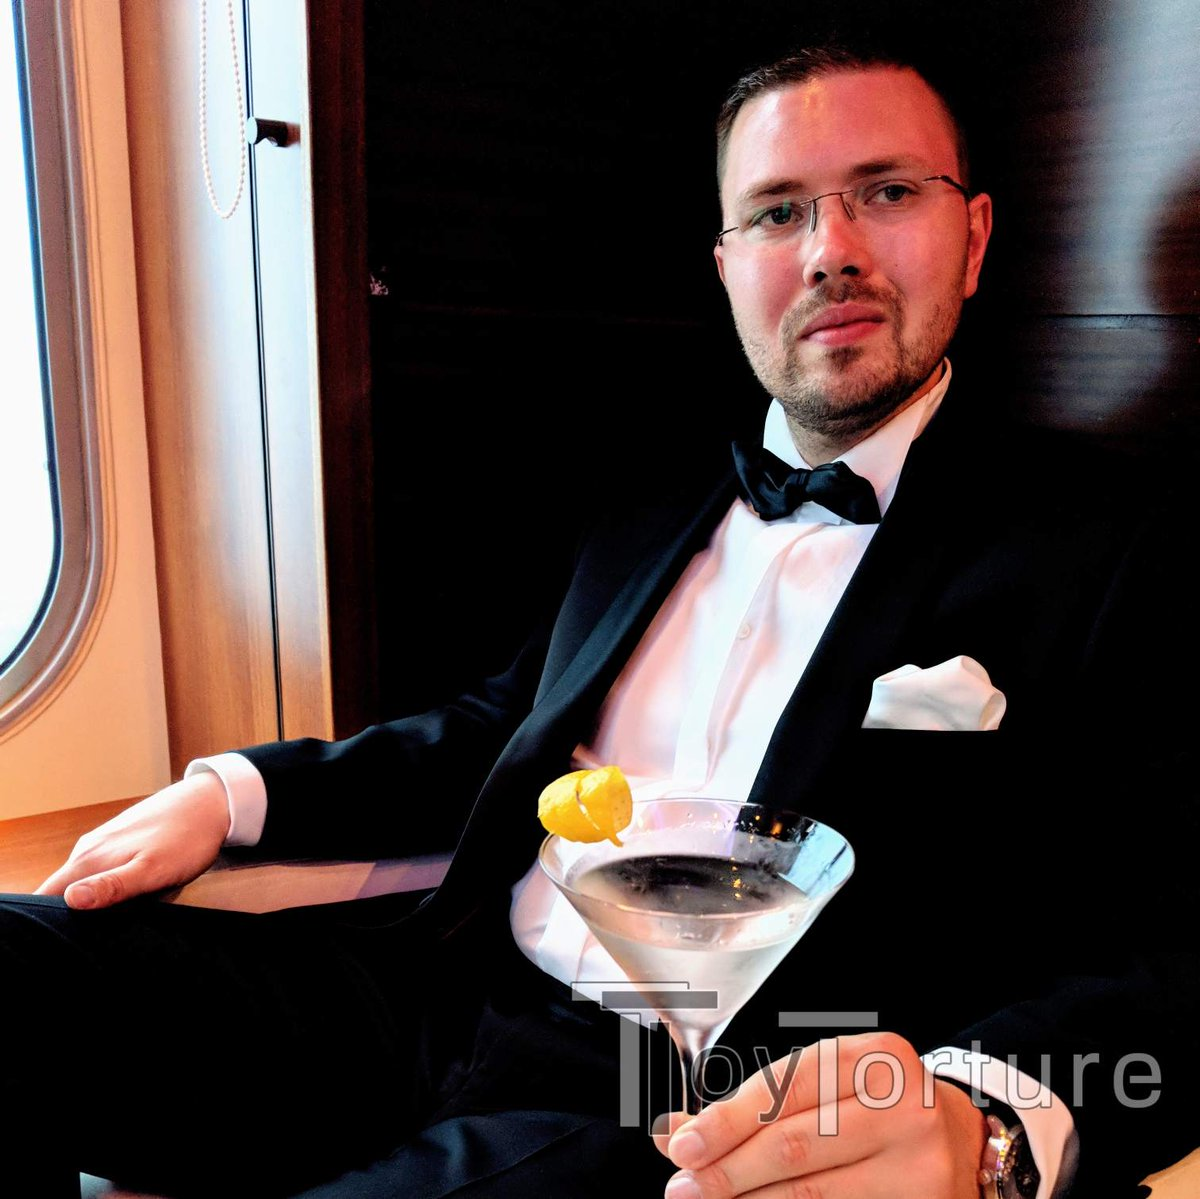 test Twitter Media - Boat vacation 2020 vs 2018 Today: Pastis with water in @MrSLeather x @Mister_B_Ams leather with @looked3 at MS1 RuhePol Lounge Then: Martini in new wool with @KometMuc at QM2 Commodore Club https://t.co/NLZcirtDeo